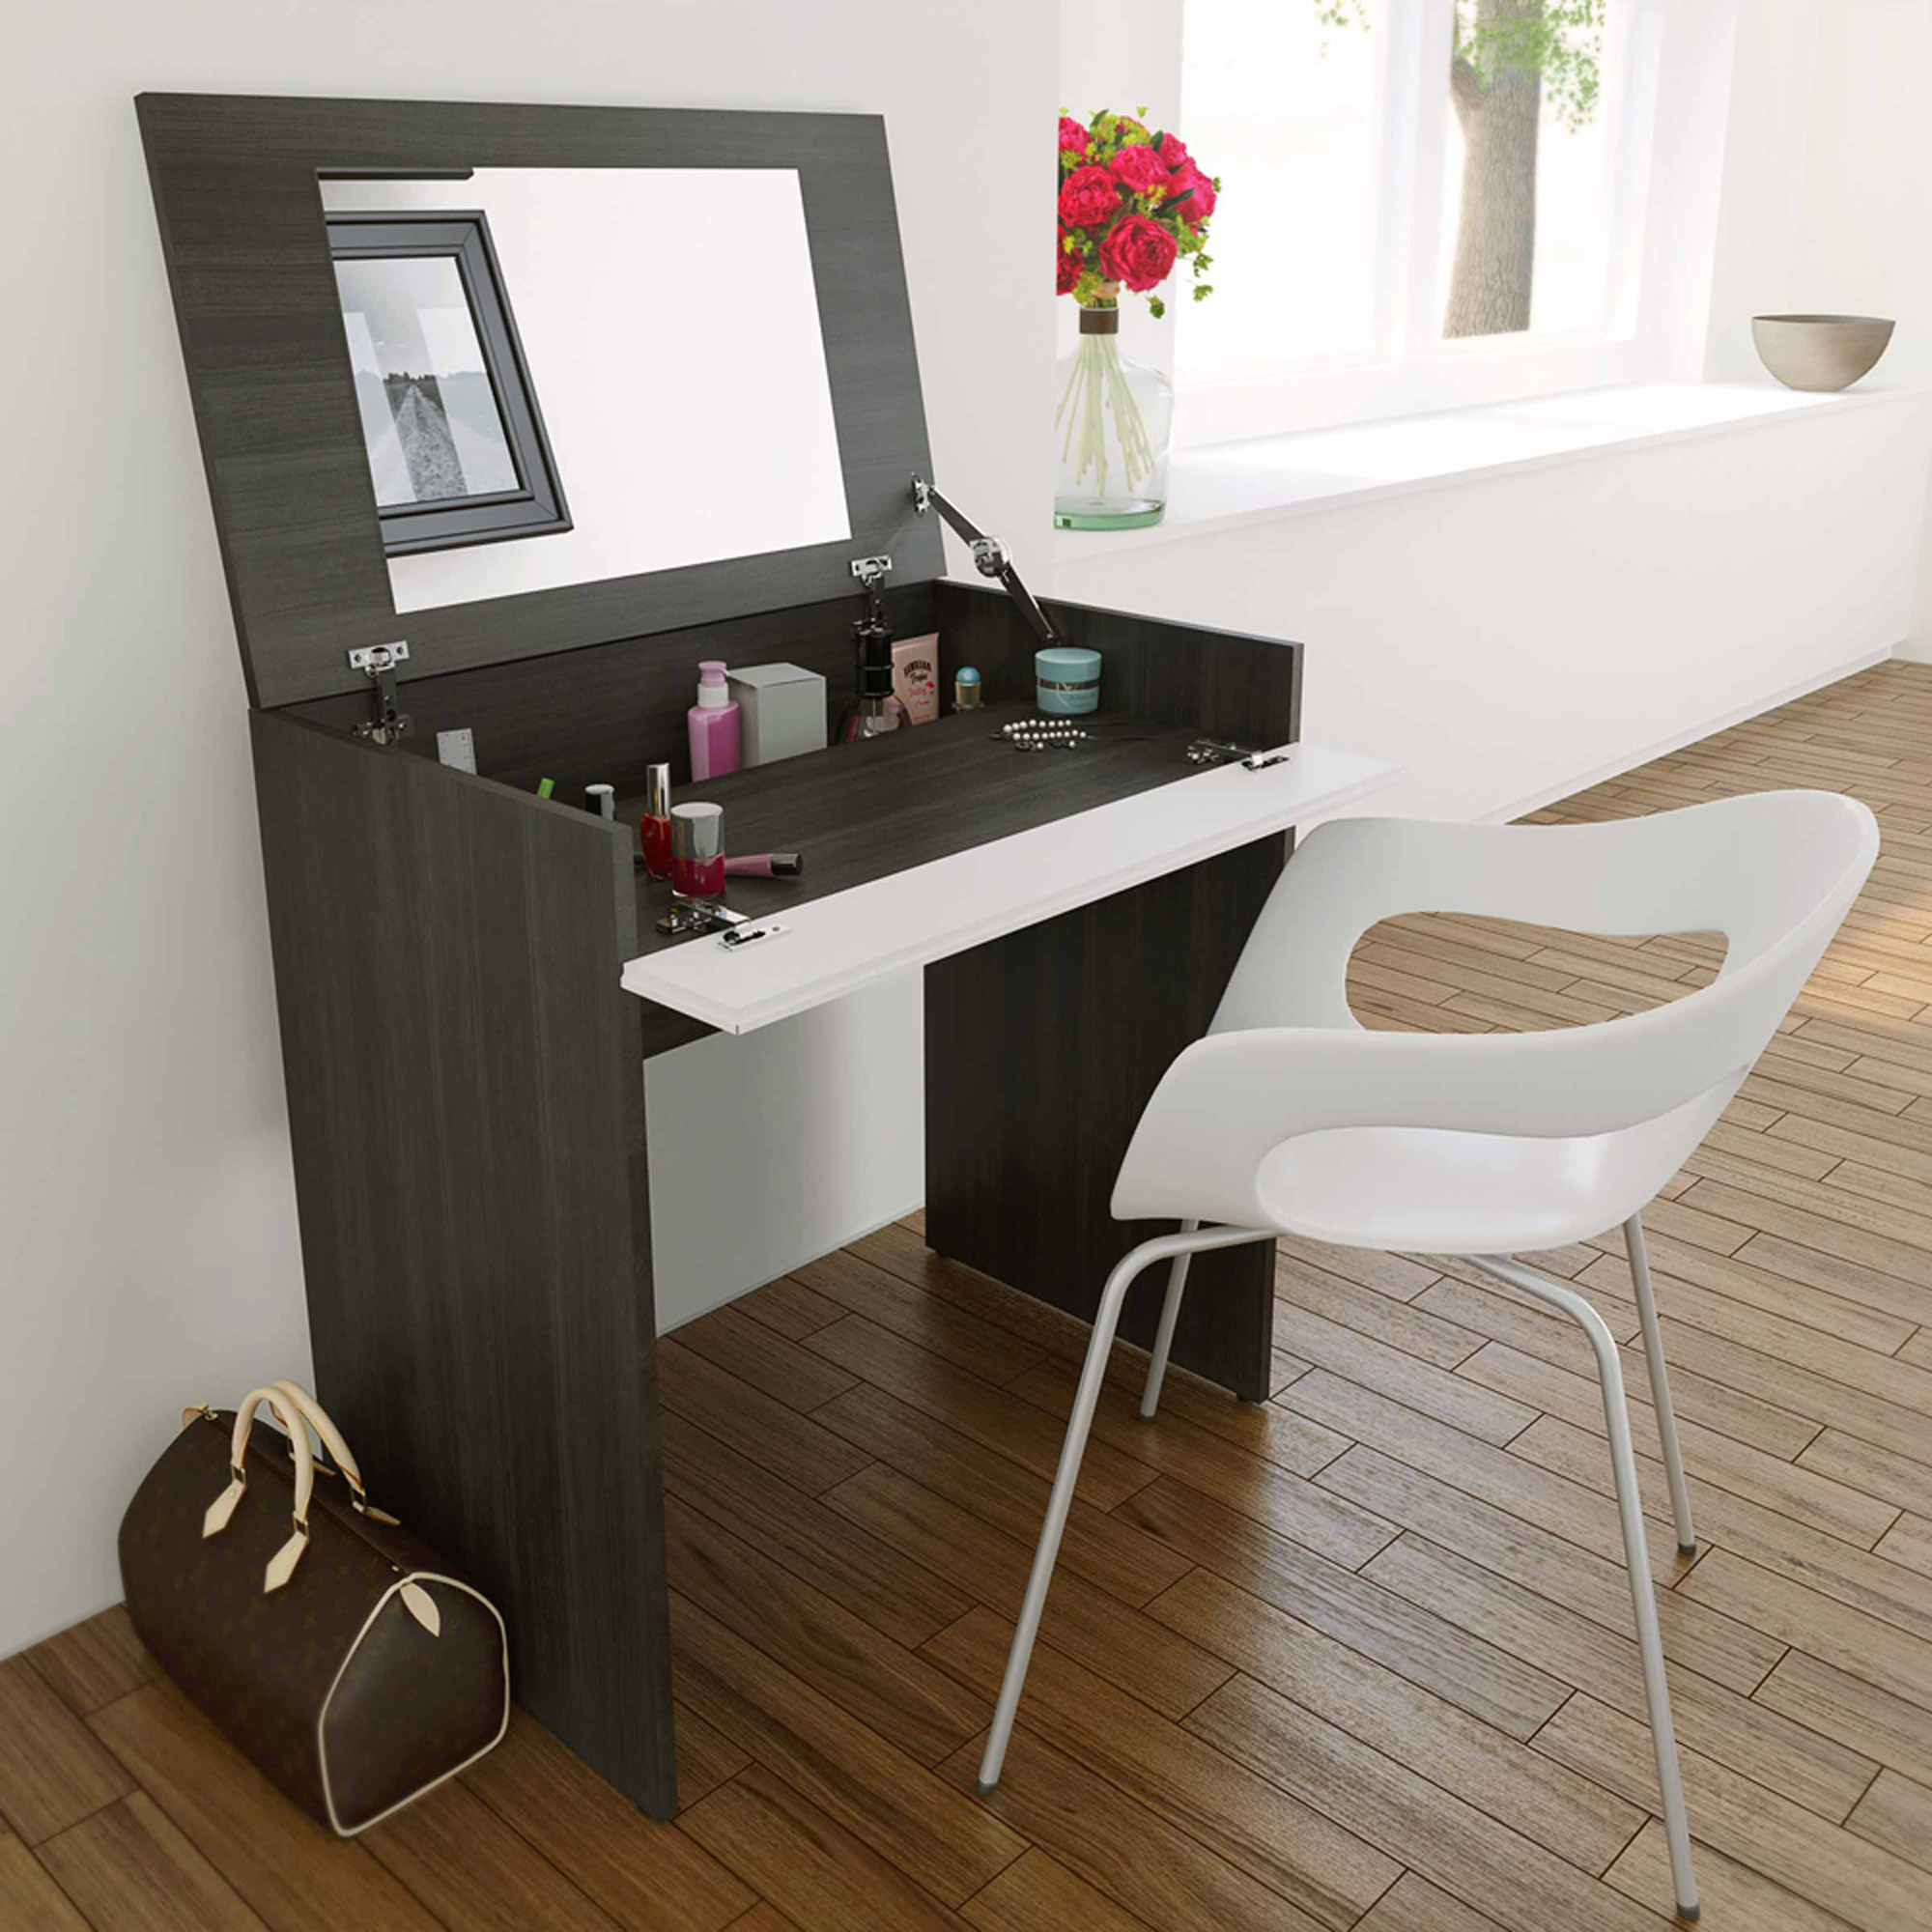 Makeup vanity table with lights - Nexera Allure Vanity